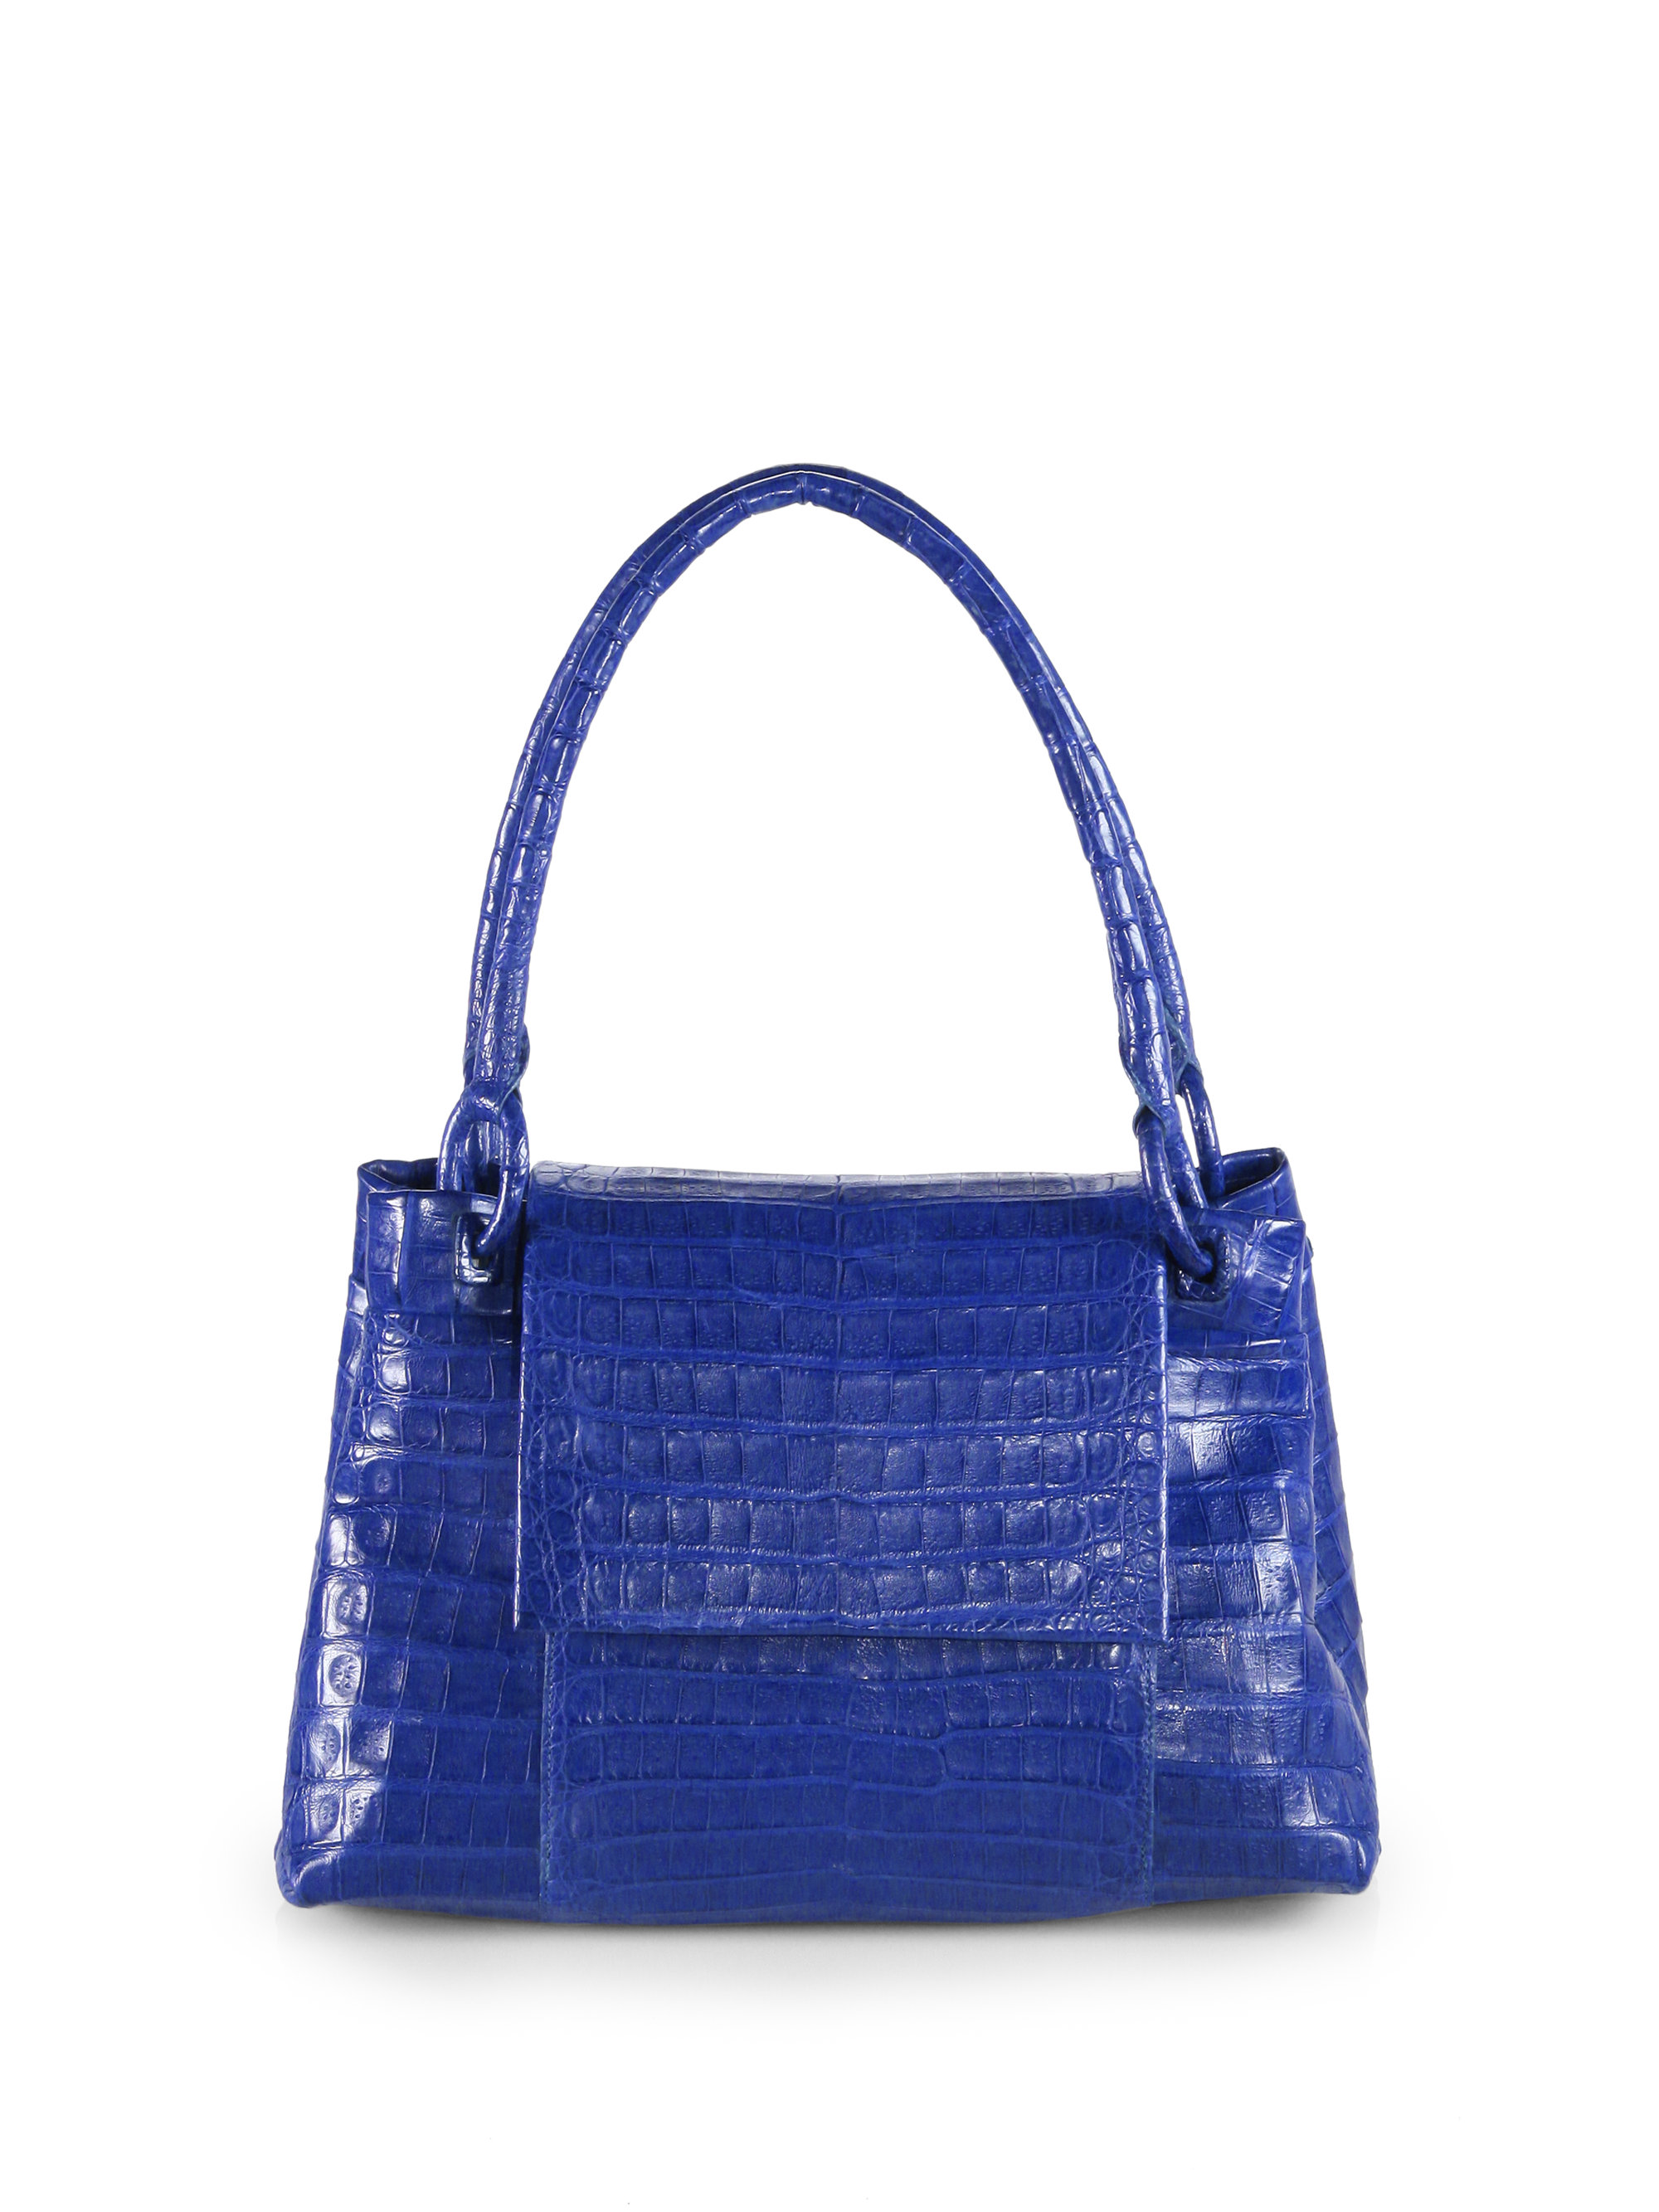 Nancy gonzalez small crocodile flap tote in blue cobalt for Nancy gonzalez crocodile tote